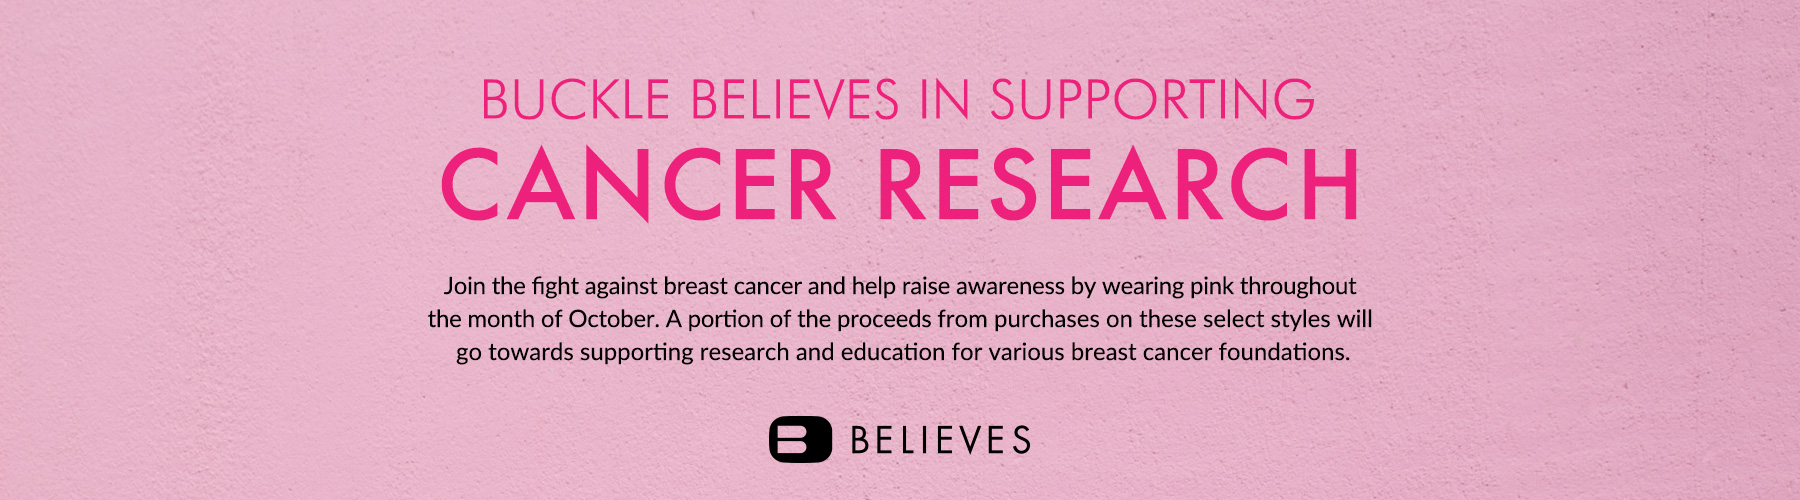 Buckle Believes in Supporting Cancer Research Banner